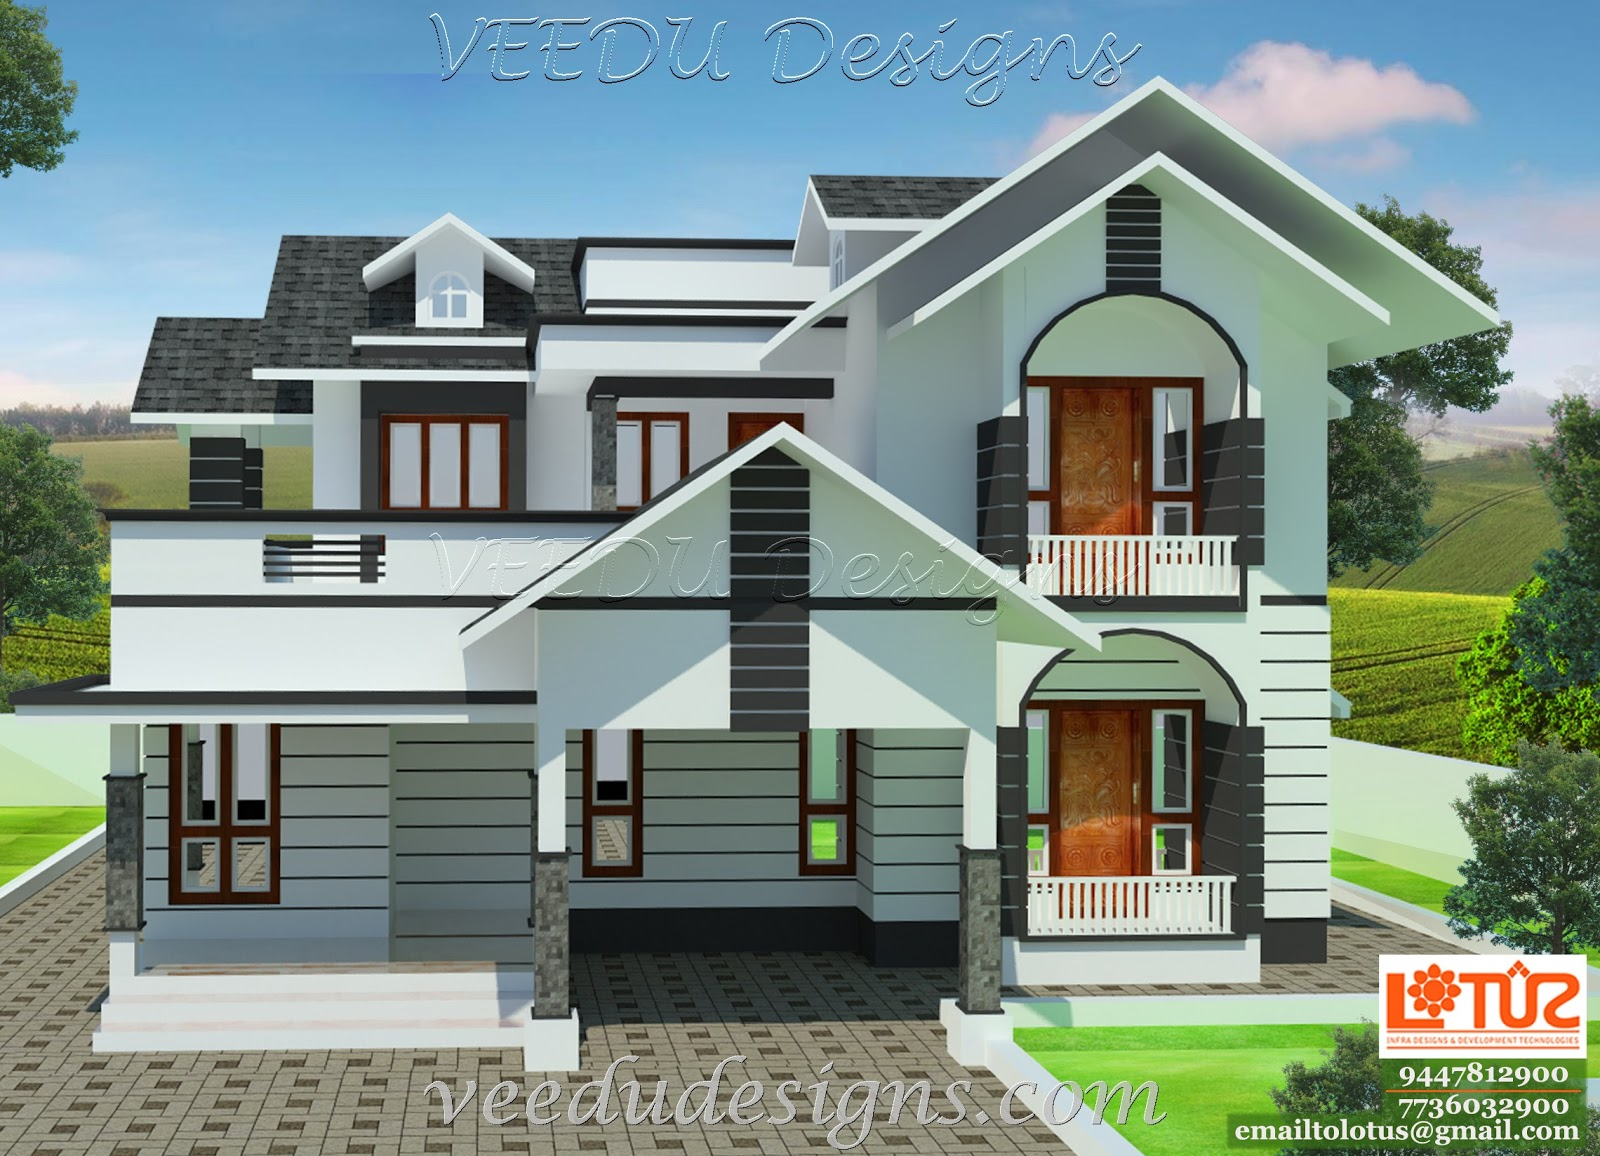 Veedu designs joy studio design gallery best design for House plans images gallery